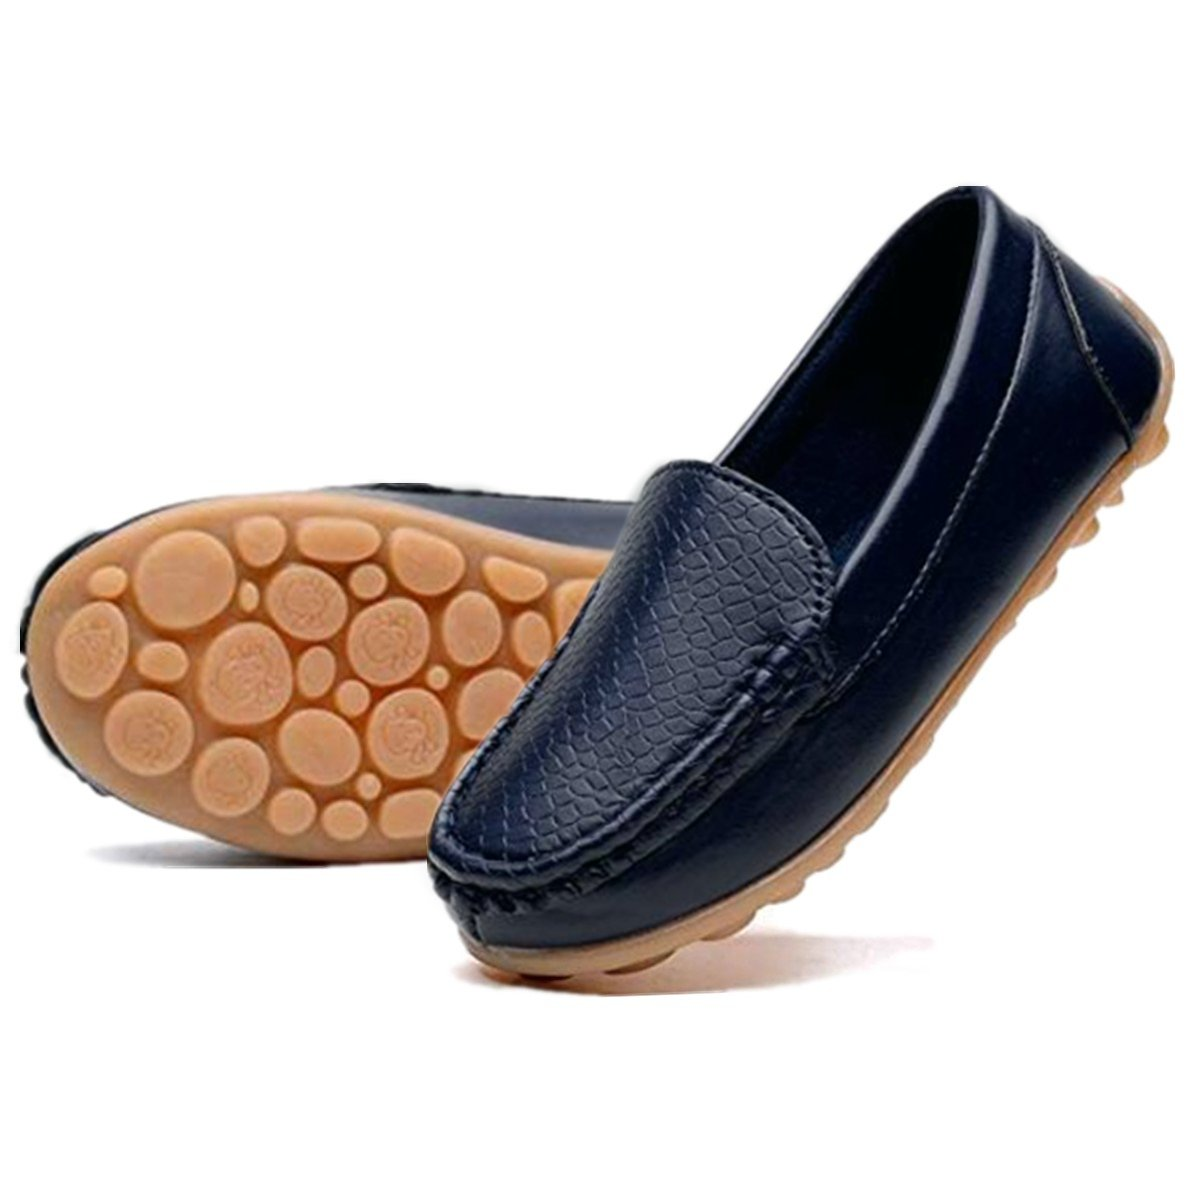 RVROVIC Kids Girls Boys Slip-on Loafers Oxford PU Leather Flats Shoes Toddler//Little Kid